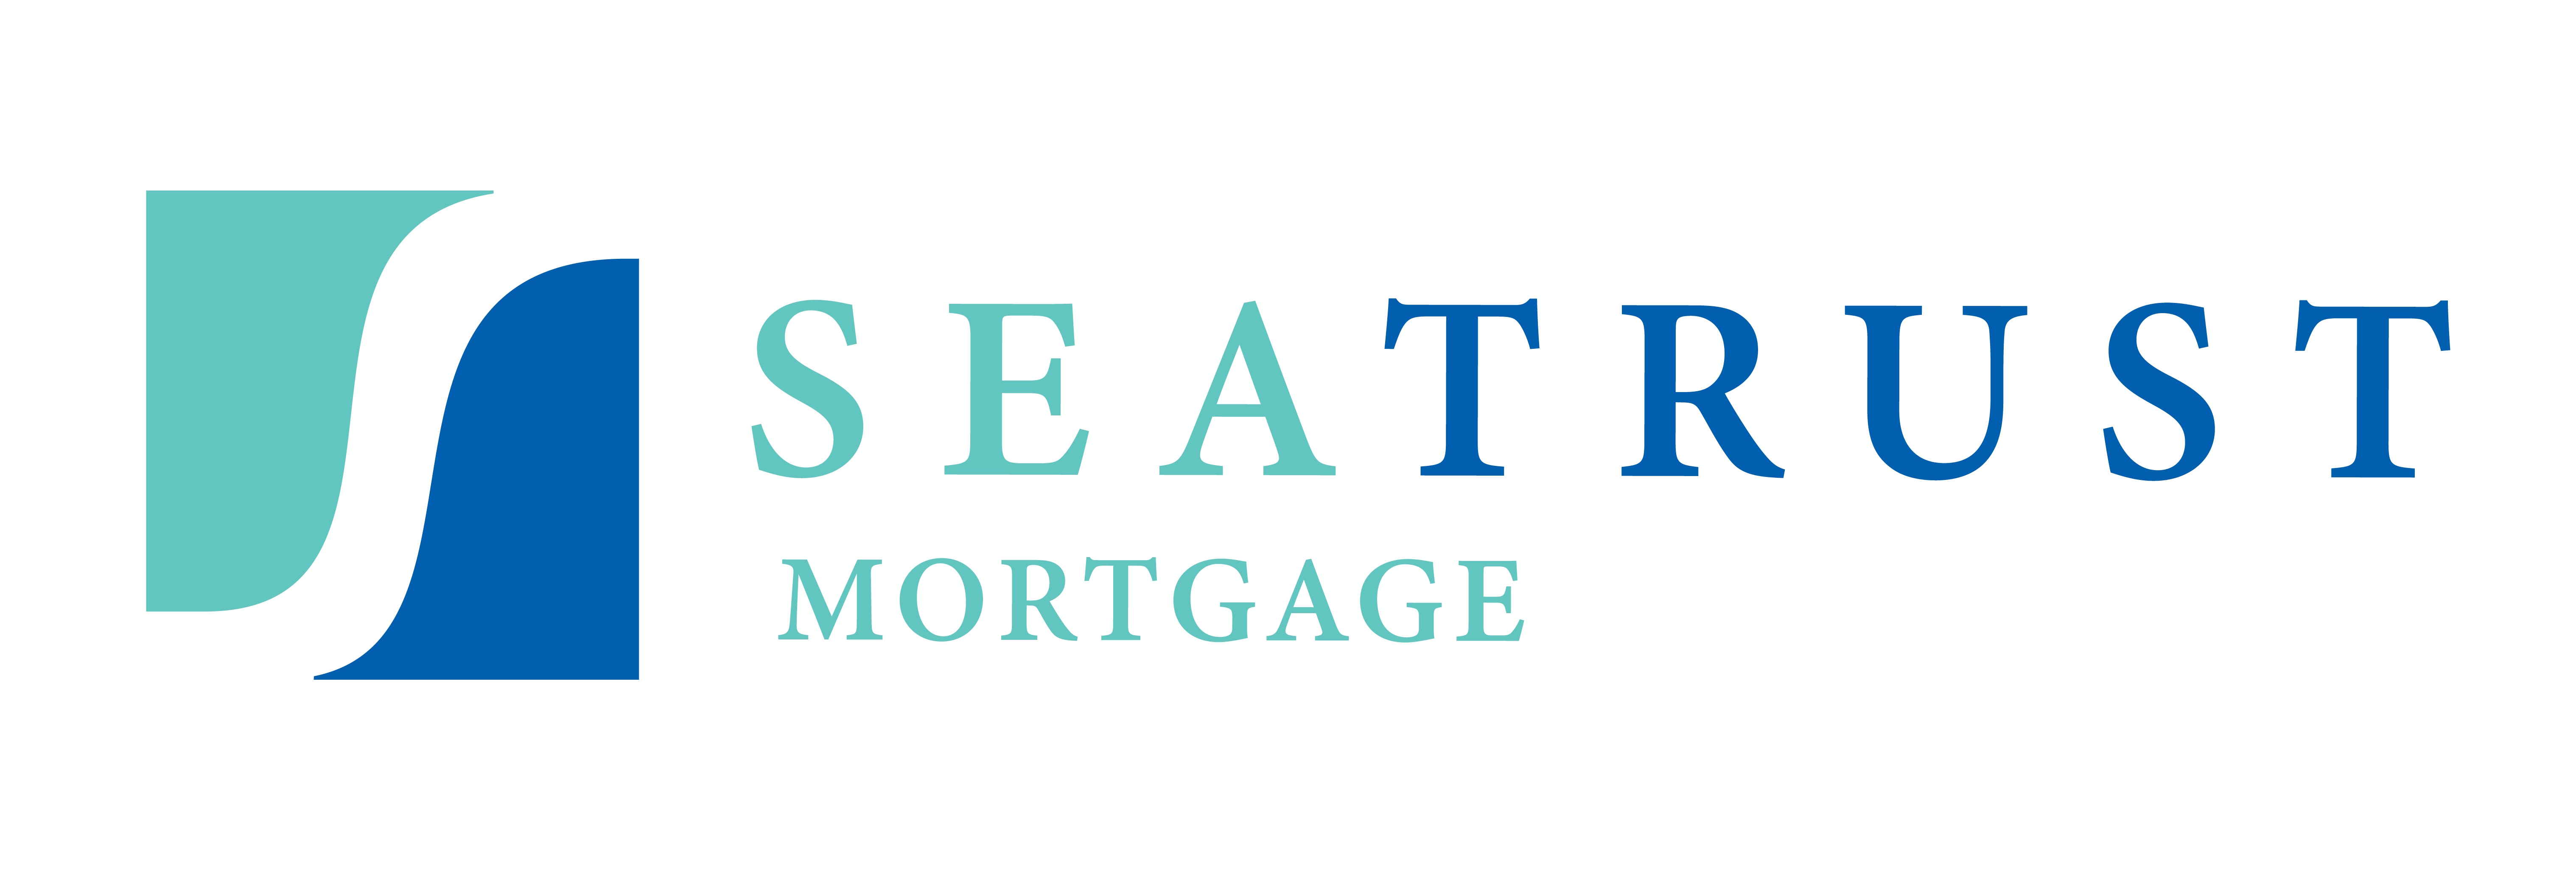 Seatrust Logos-01.png